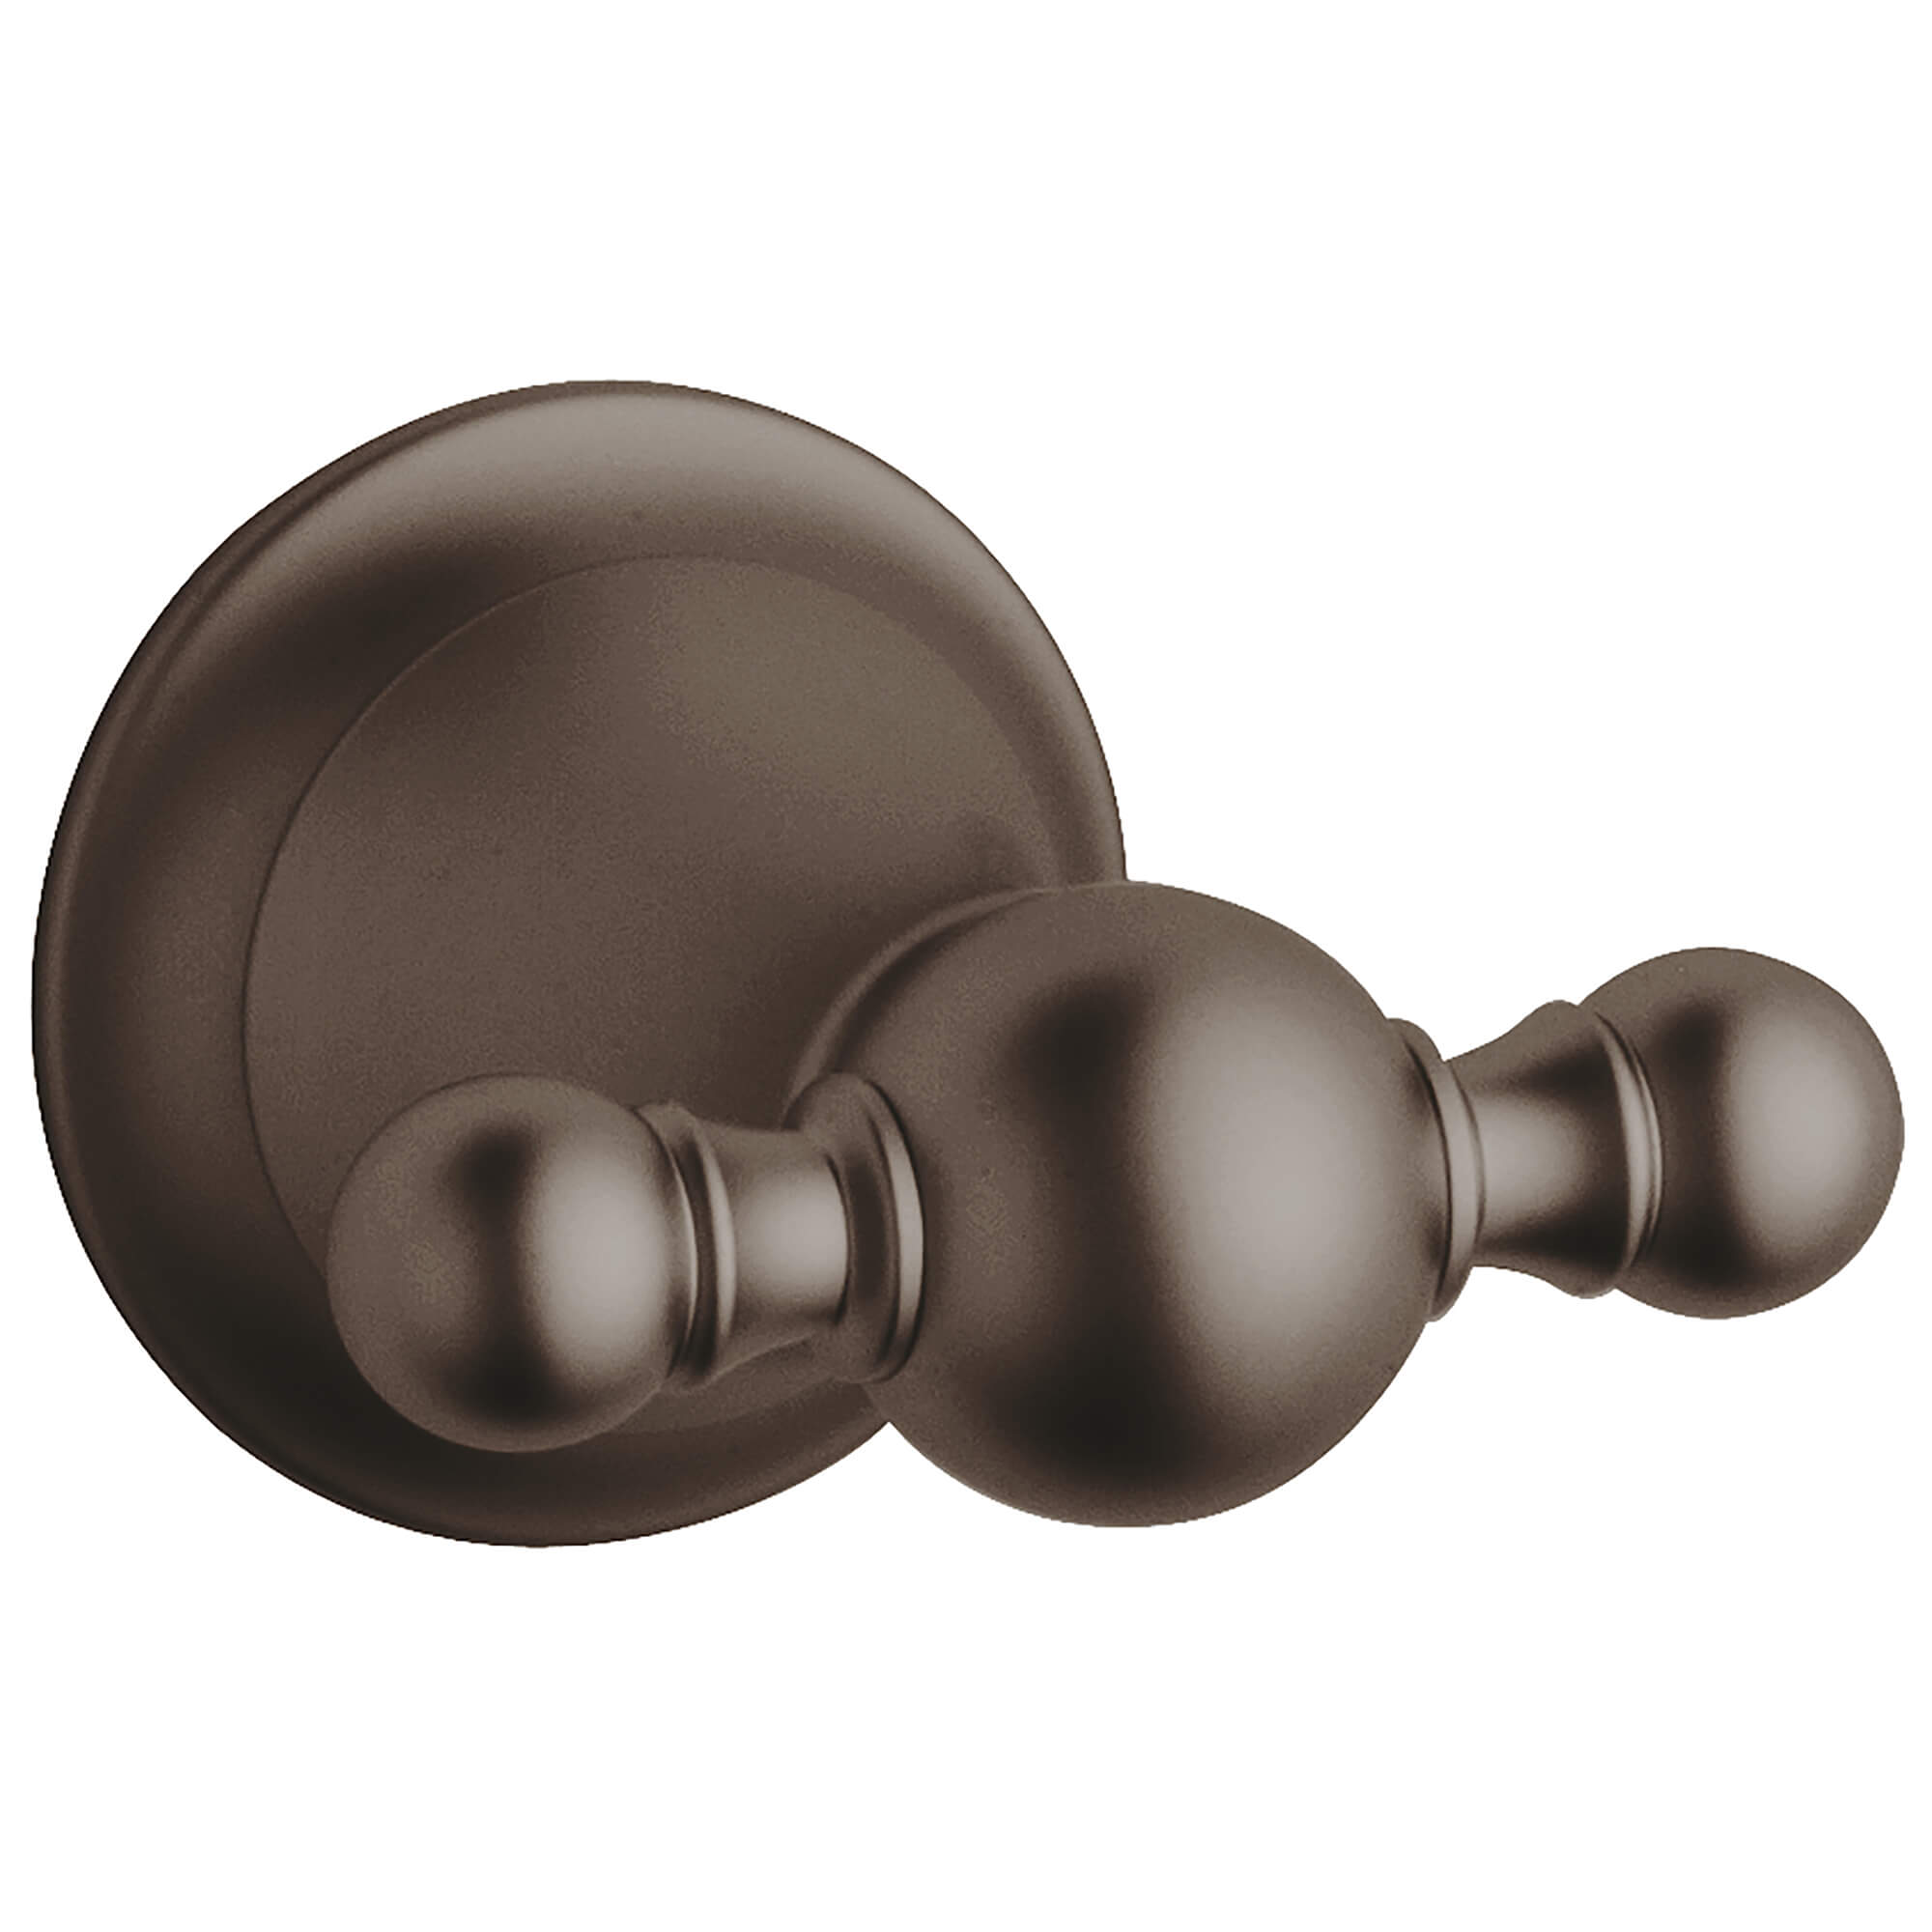 Robe Hook GROHE OIL RUBBED BRONZE